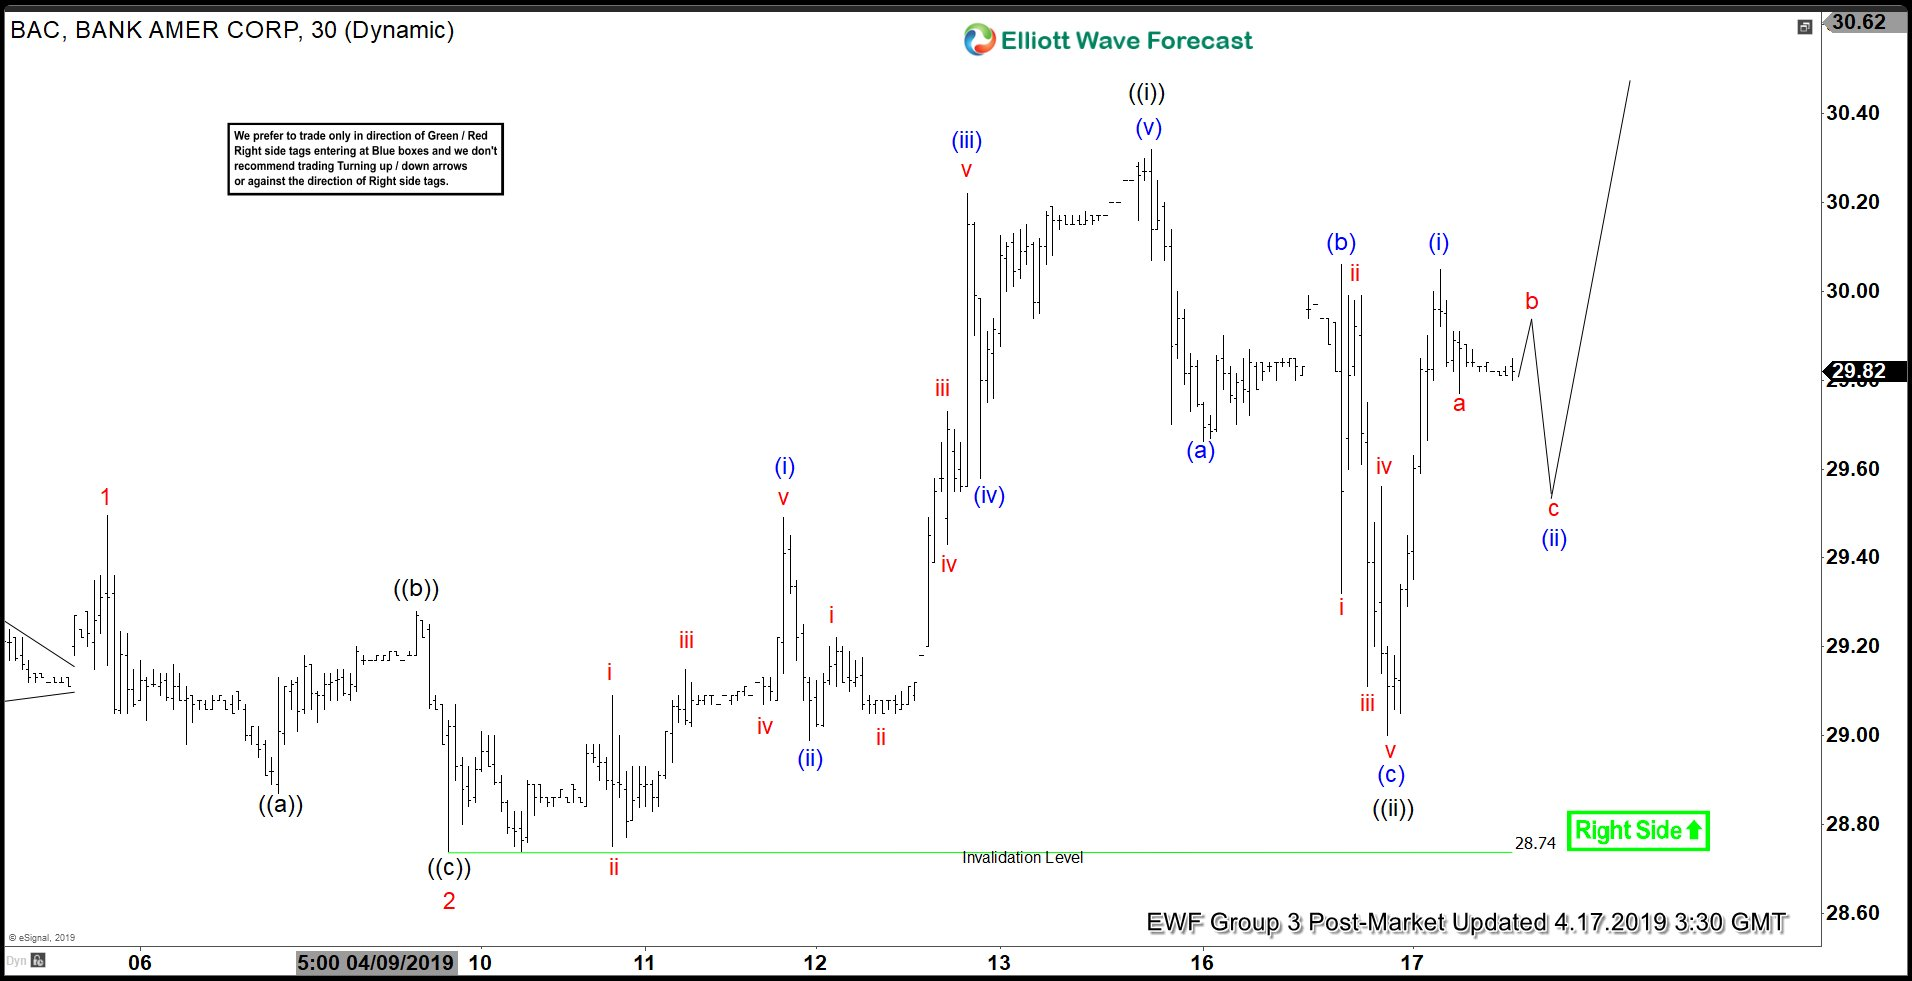 Elliott Wave View Favors More Upside in BAC